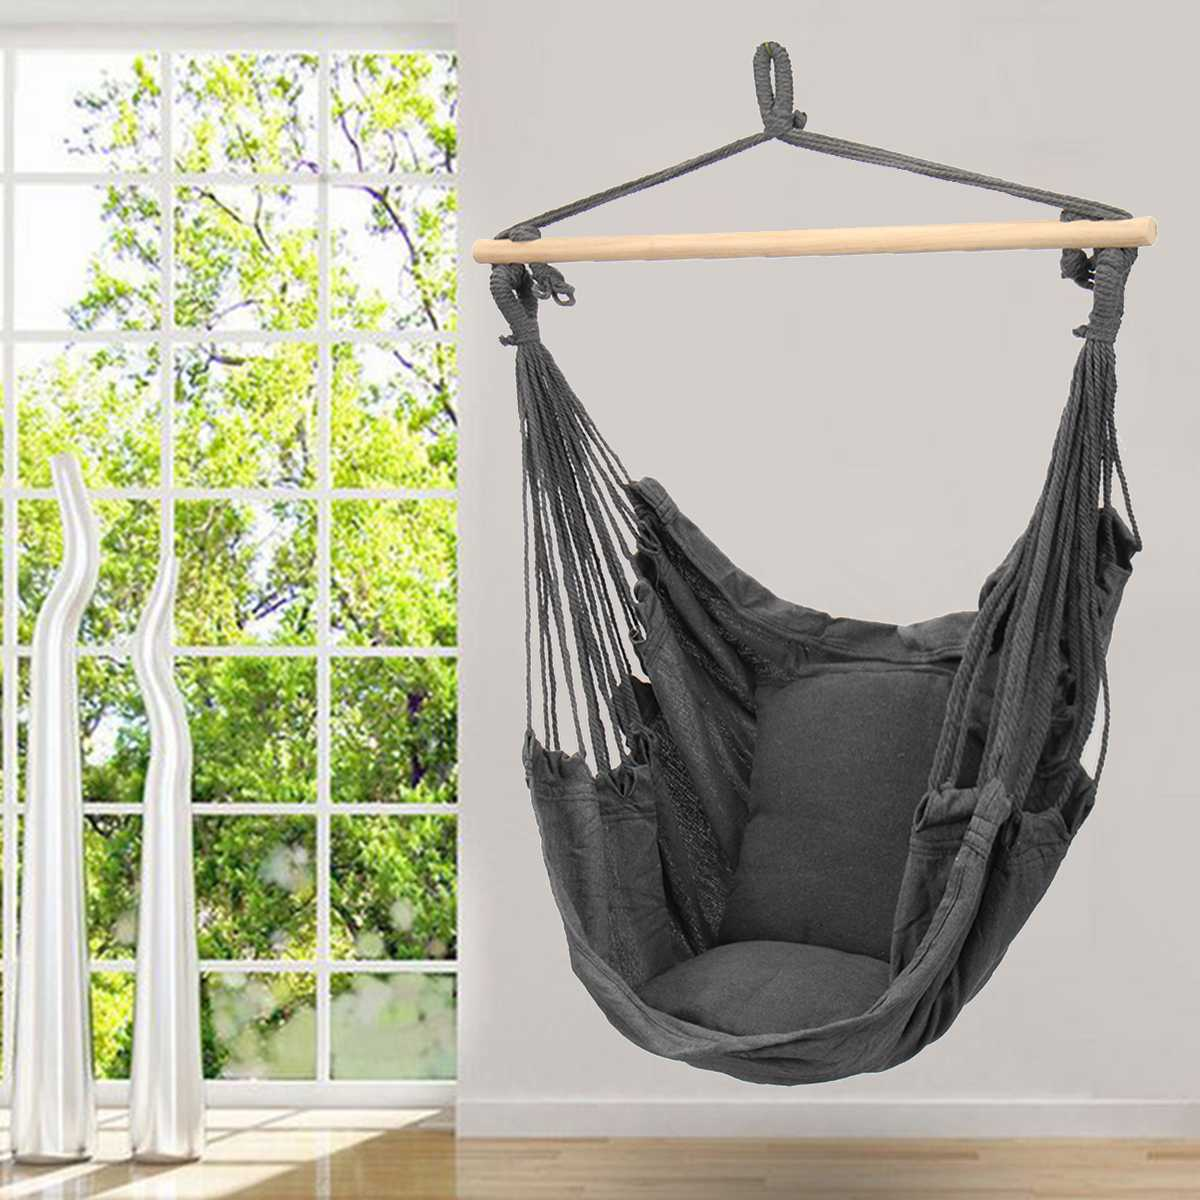 Hanging Hammock Chair Swinging Garden Outdoor Soft Cushions Seat 220KG Dormitory Bedroom Hanging ChairHanging Hammock Chair Swinging Garden Outdoor Soft Cushions Seat 220KG Dormitory Bedroom Hanging Chair